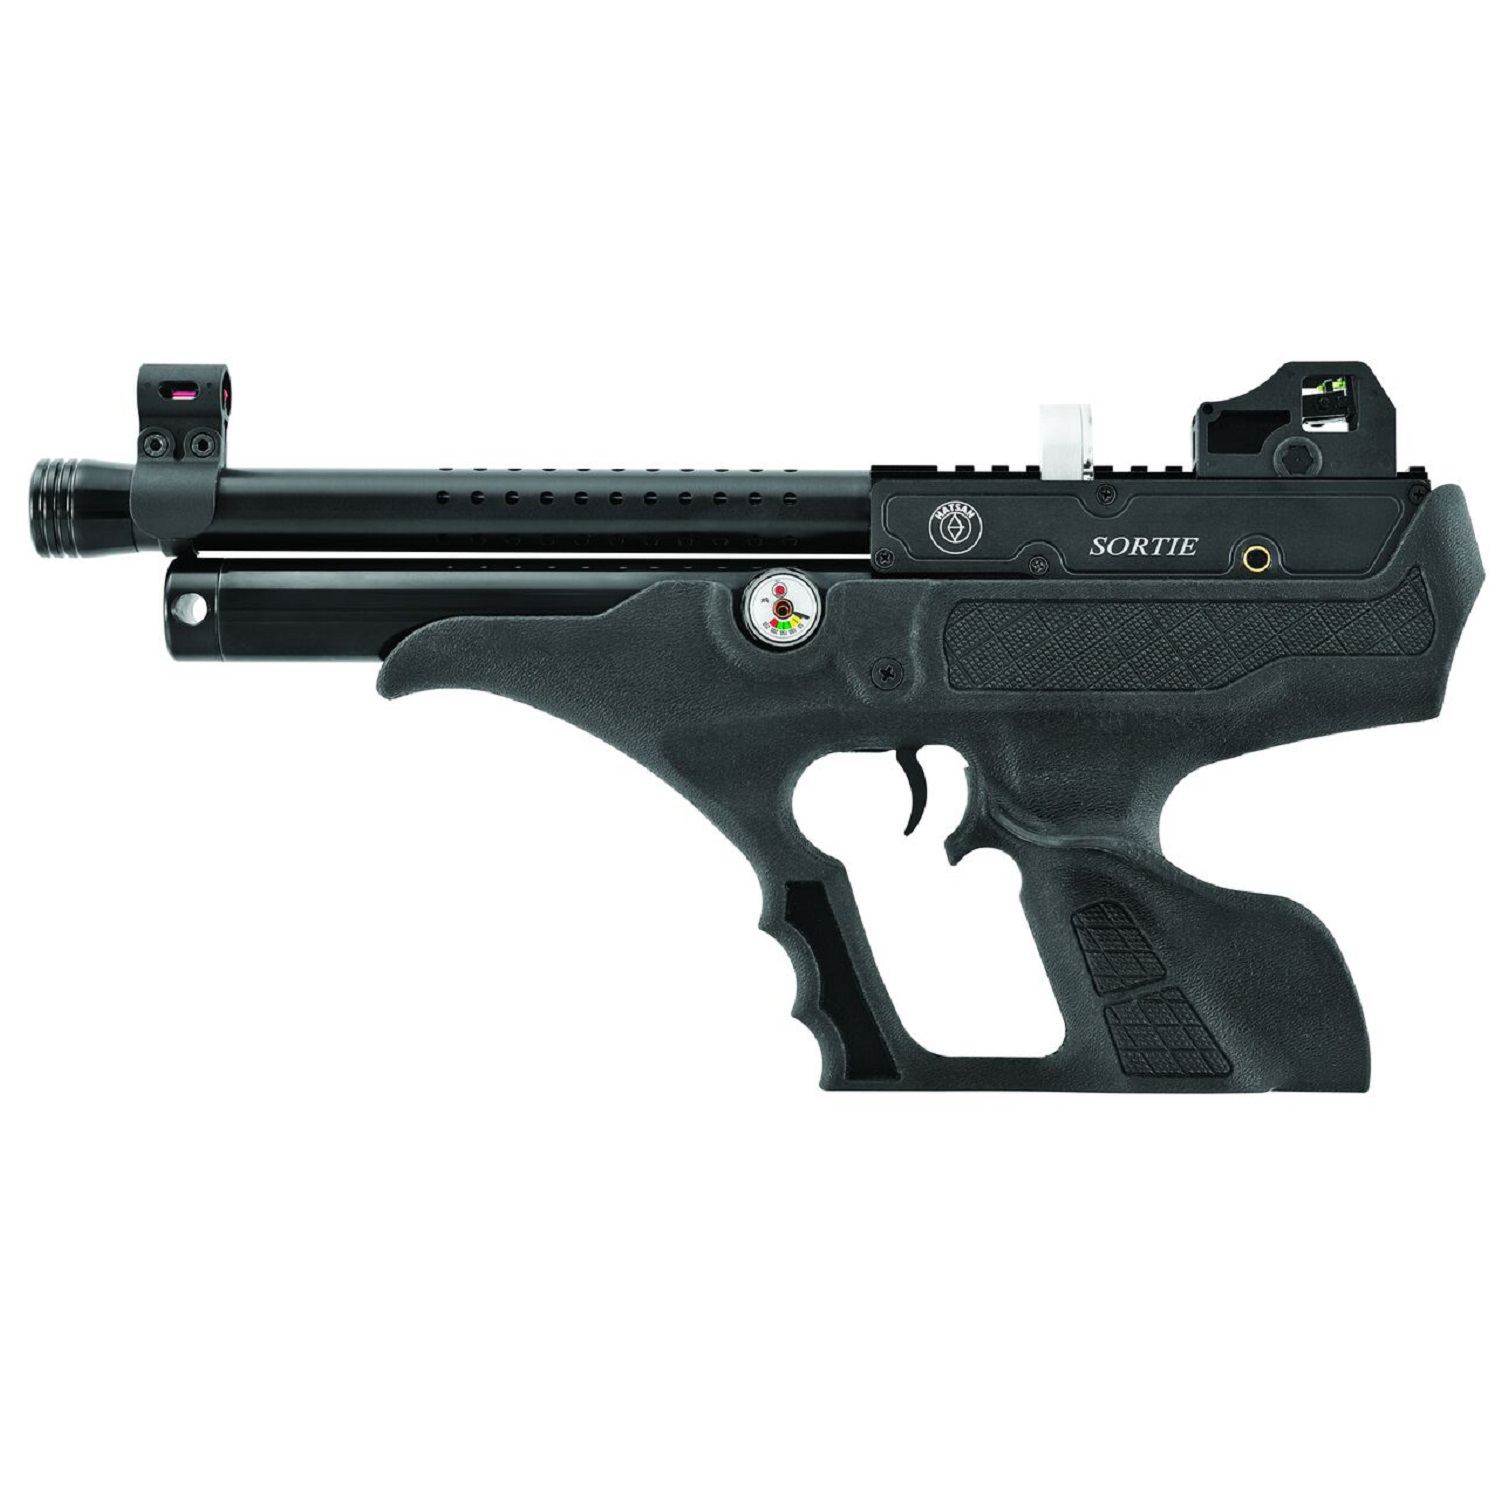 Hatsan Sortie Synthetic Air Pistol - .22 Caliber